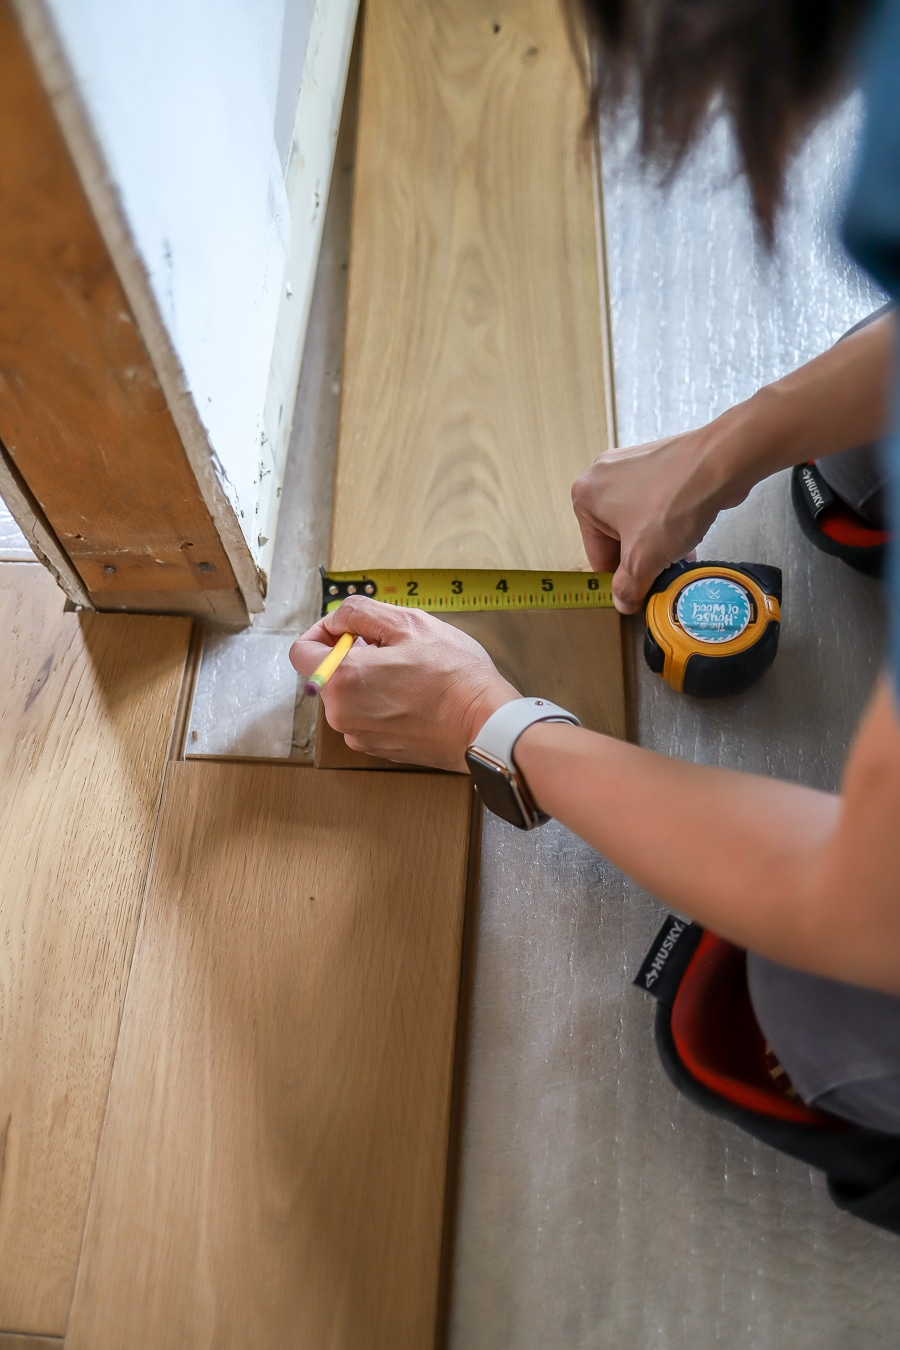 How to notch hardwood floors